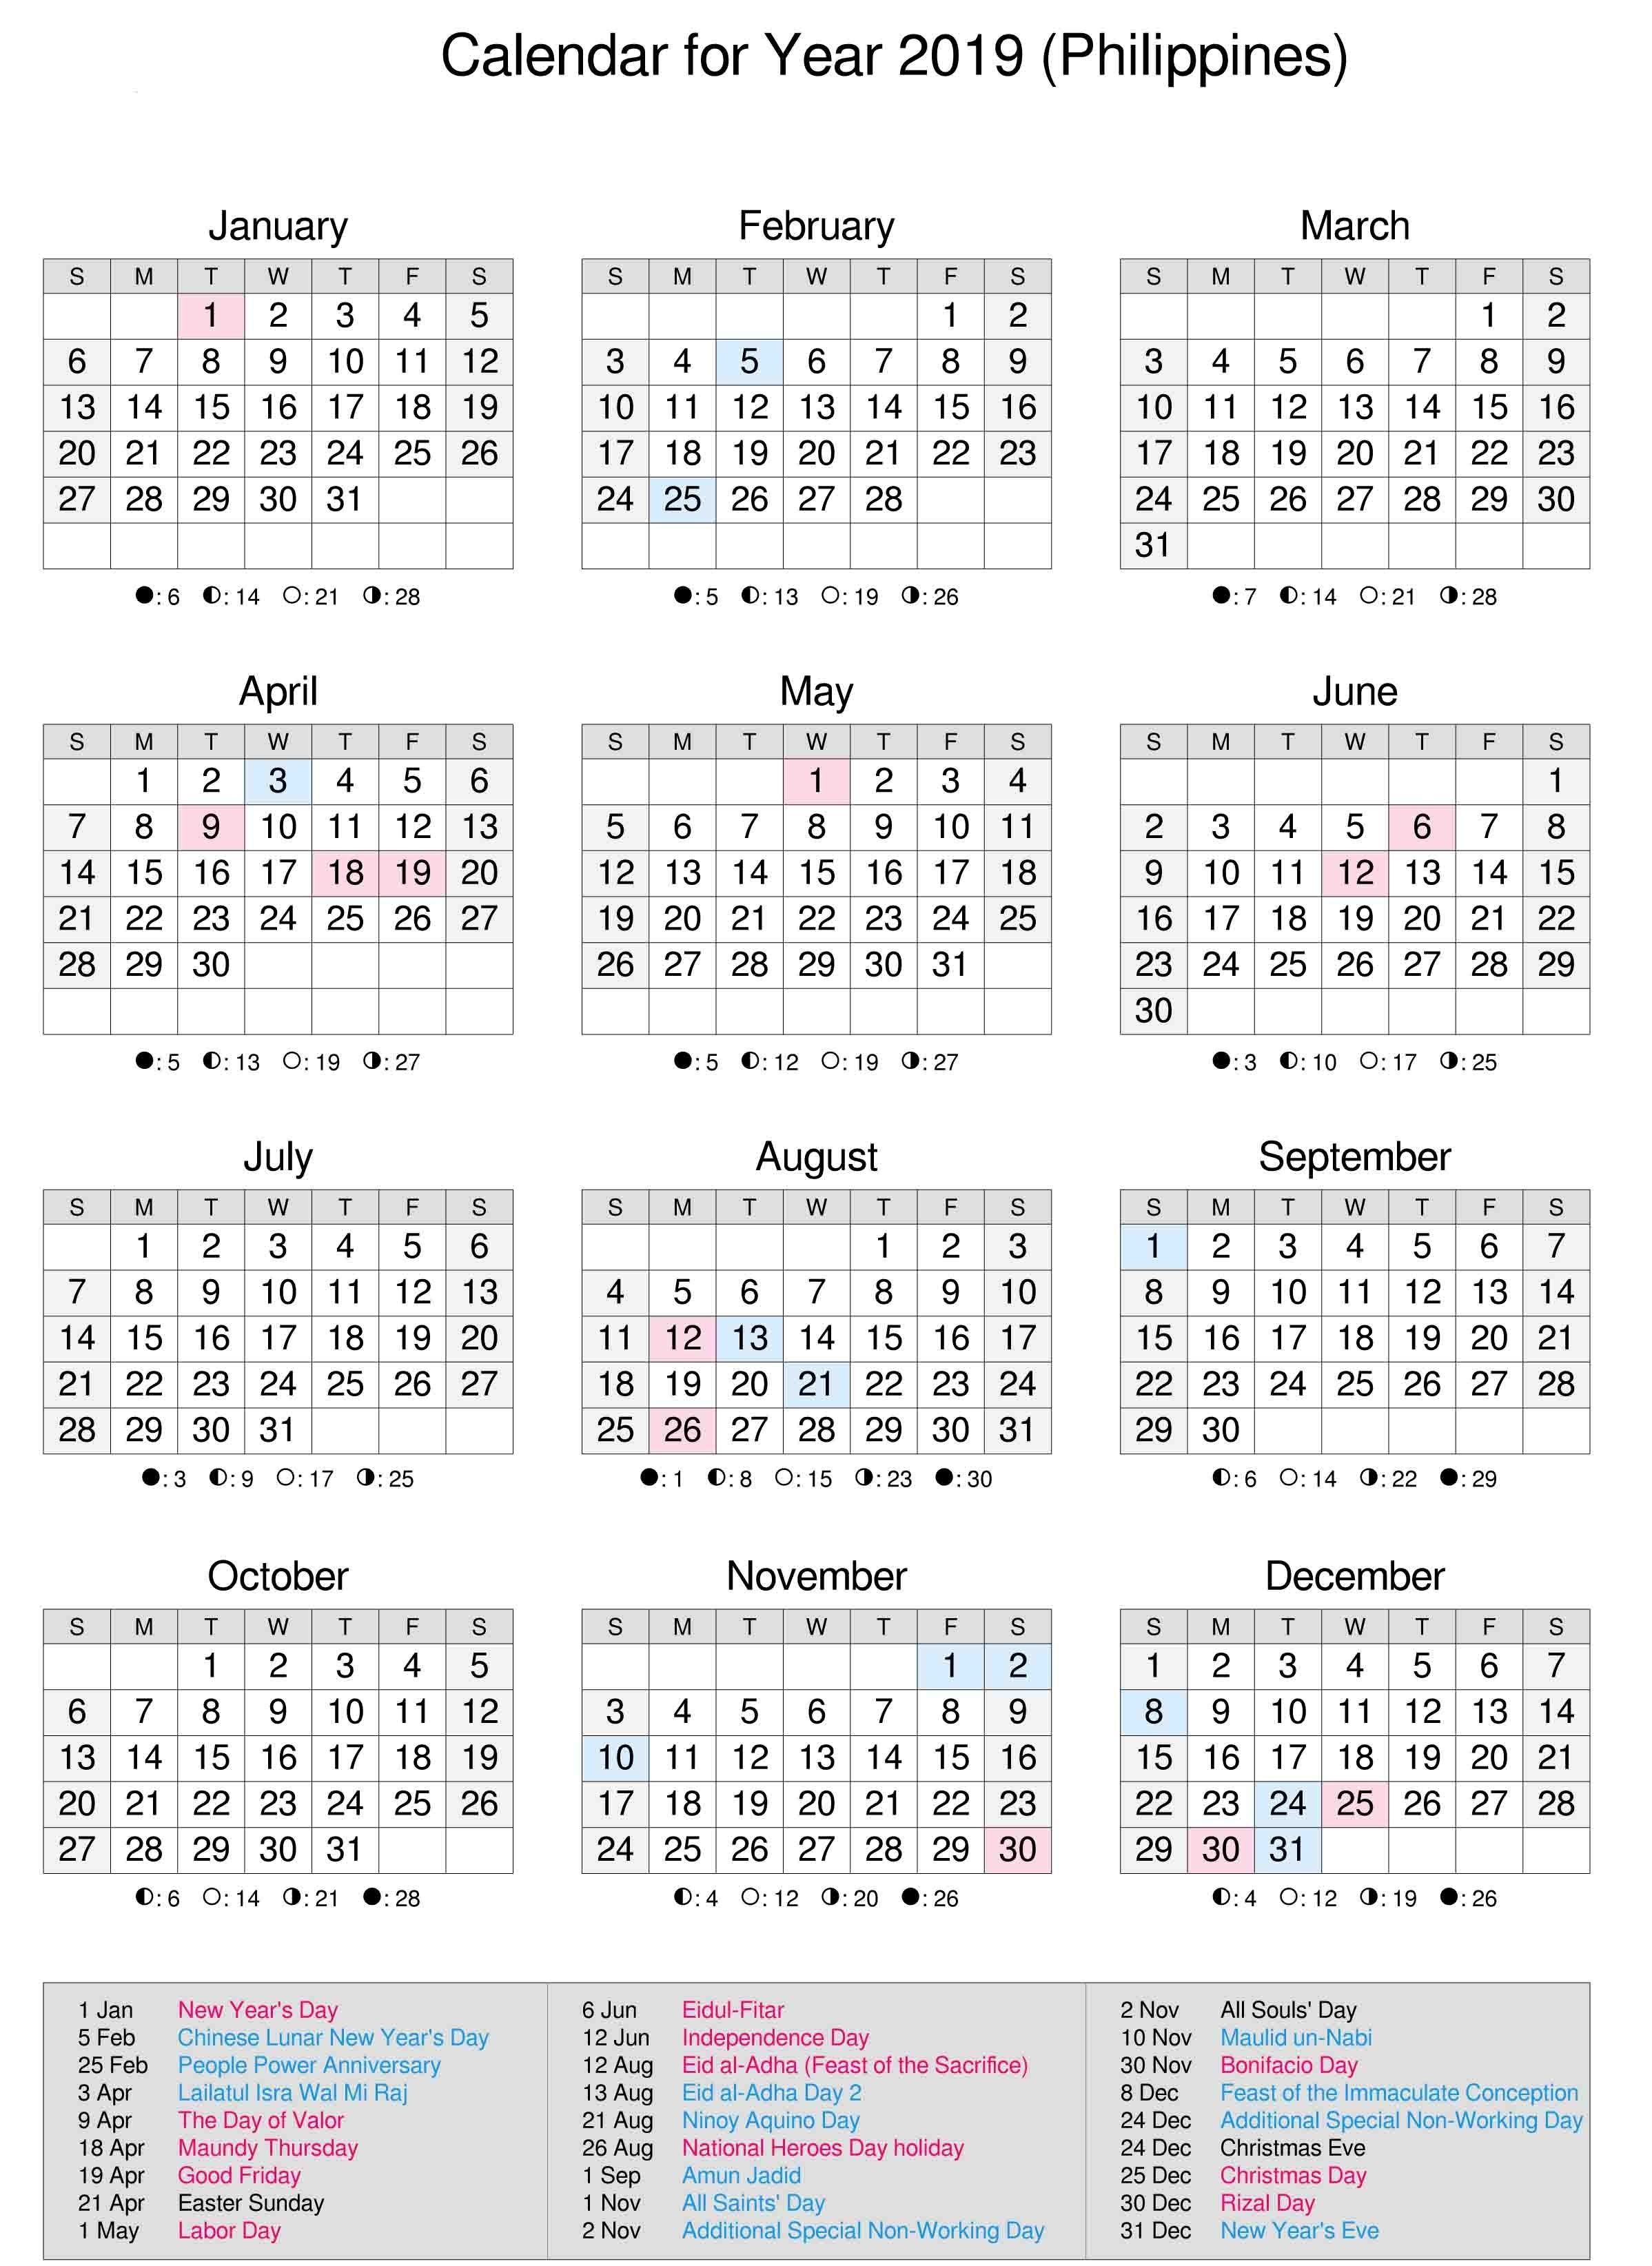 Philippines 2019 Calendar | Calendar 2019 | 2019 Calendar-Calendar Template With Philippine Holidays